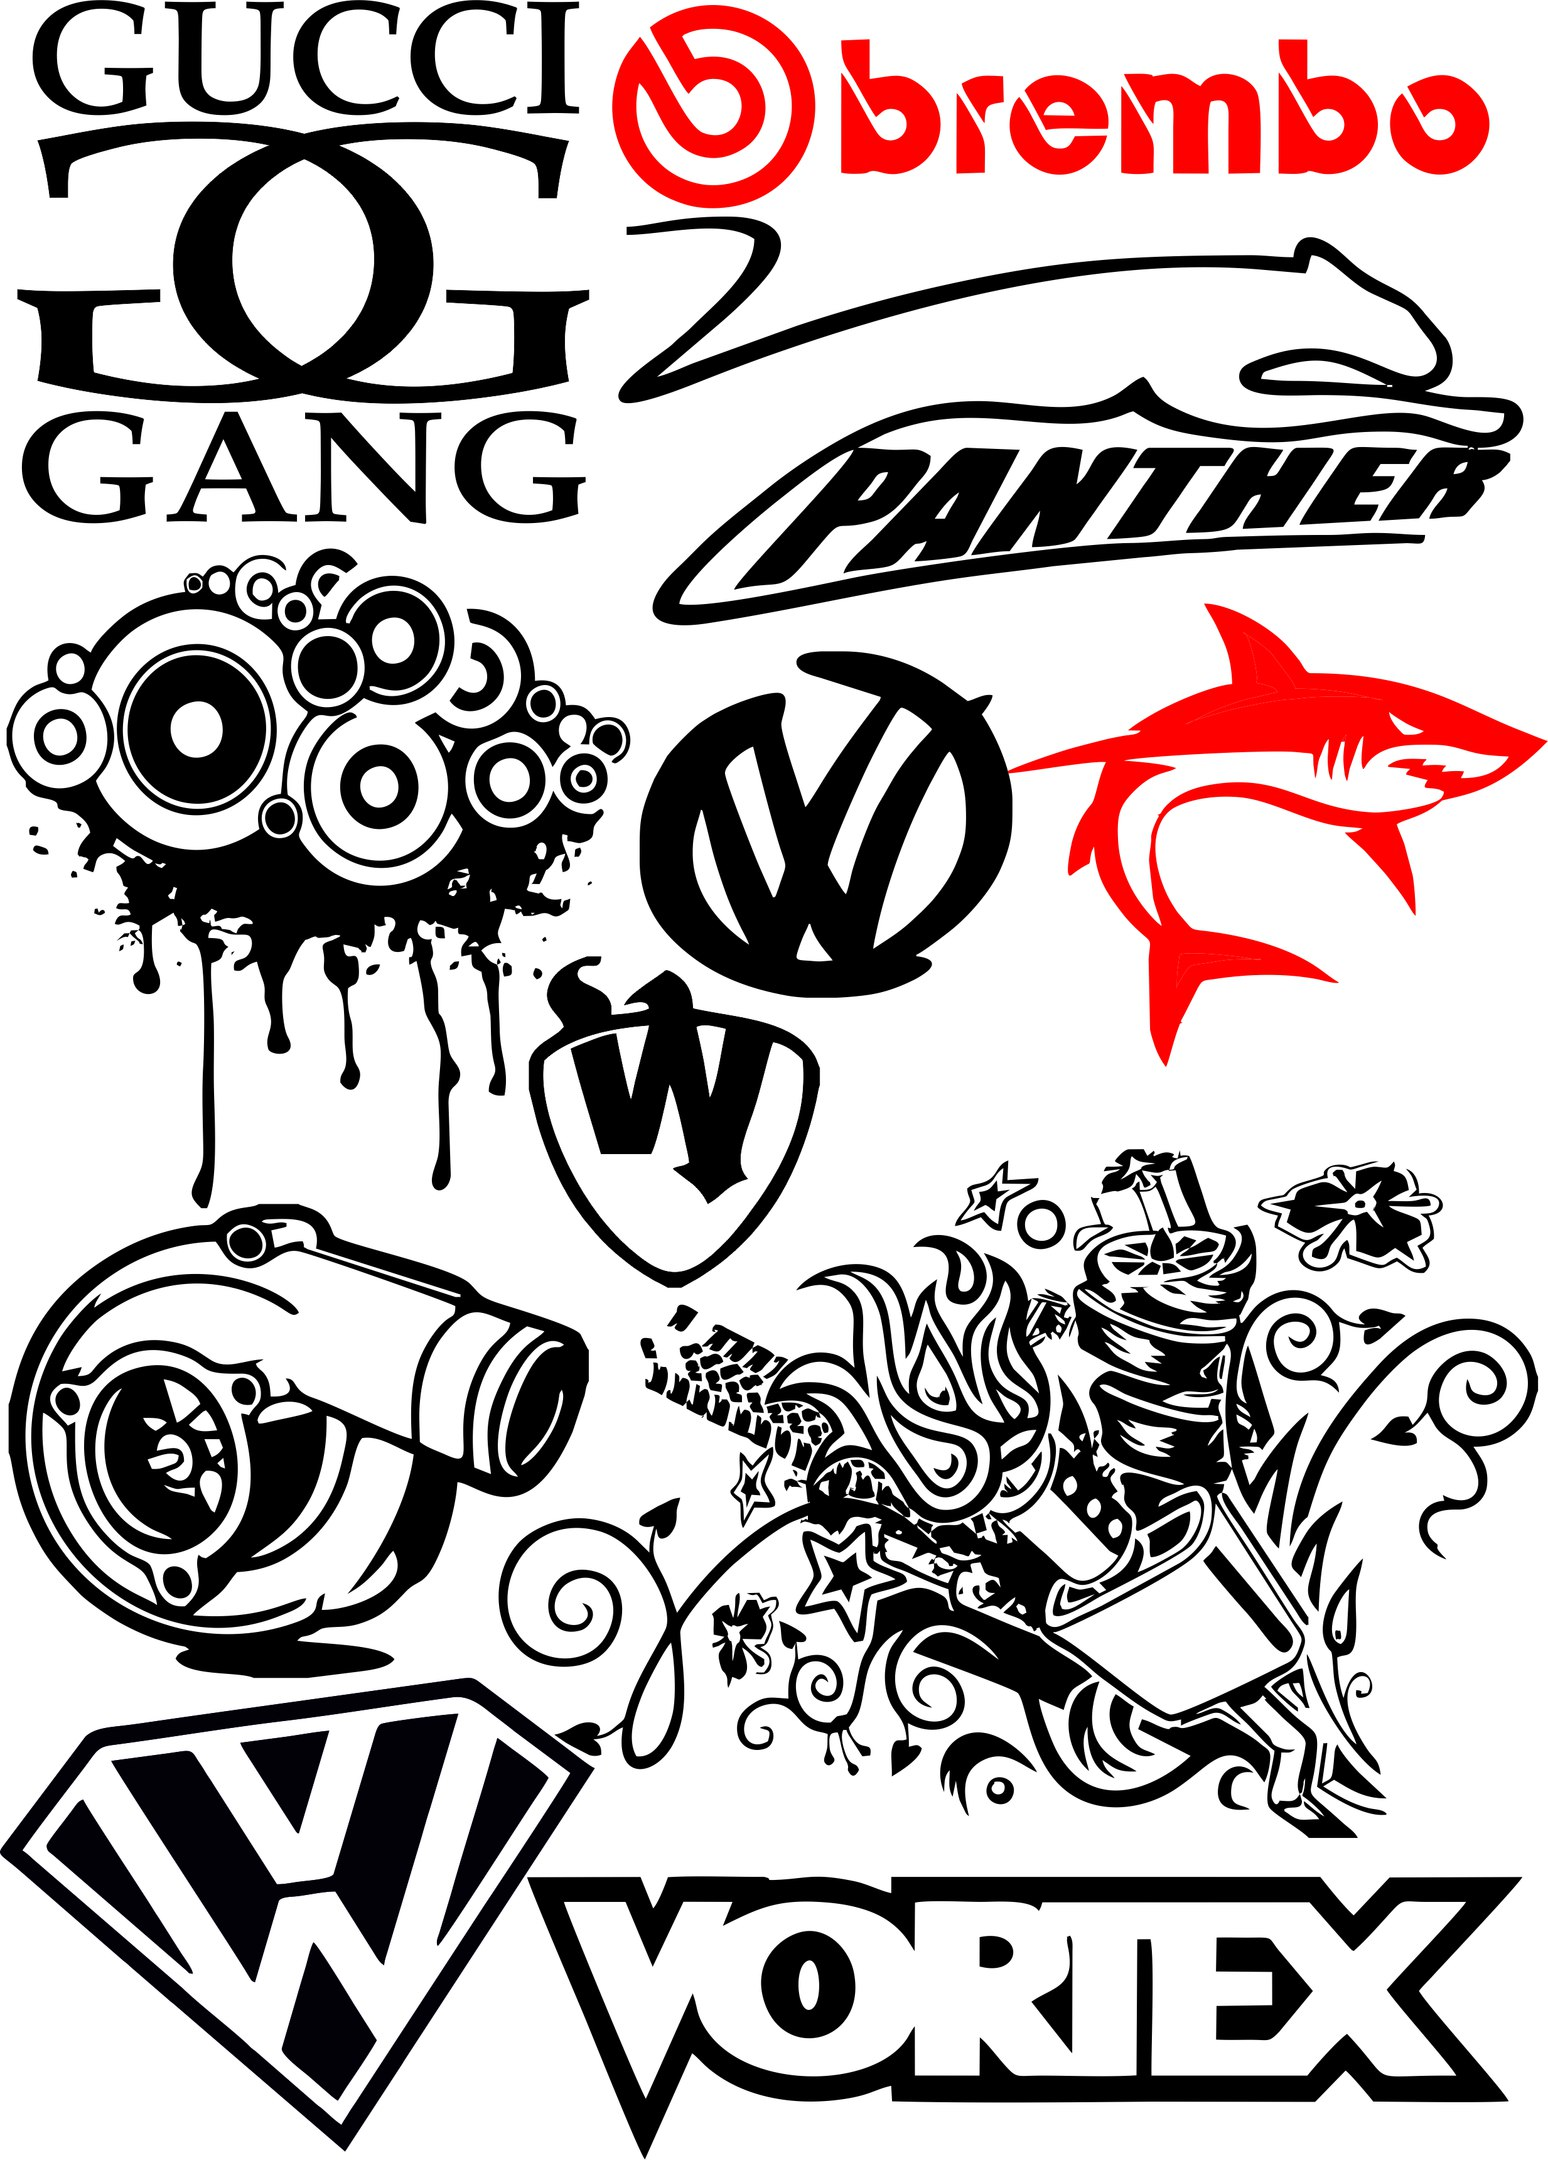 Free vector packs | vector & photoshop brushes | stock graphic designs.